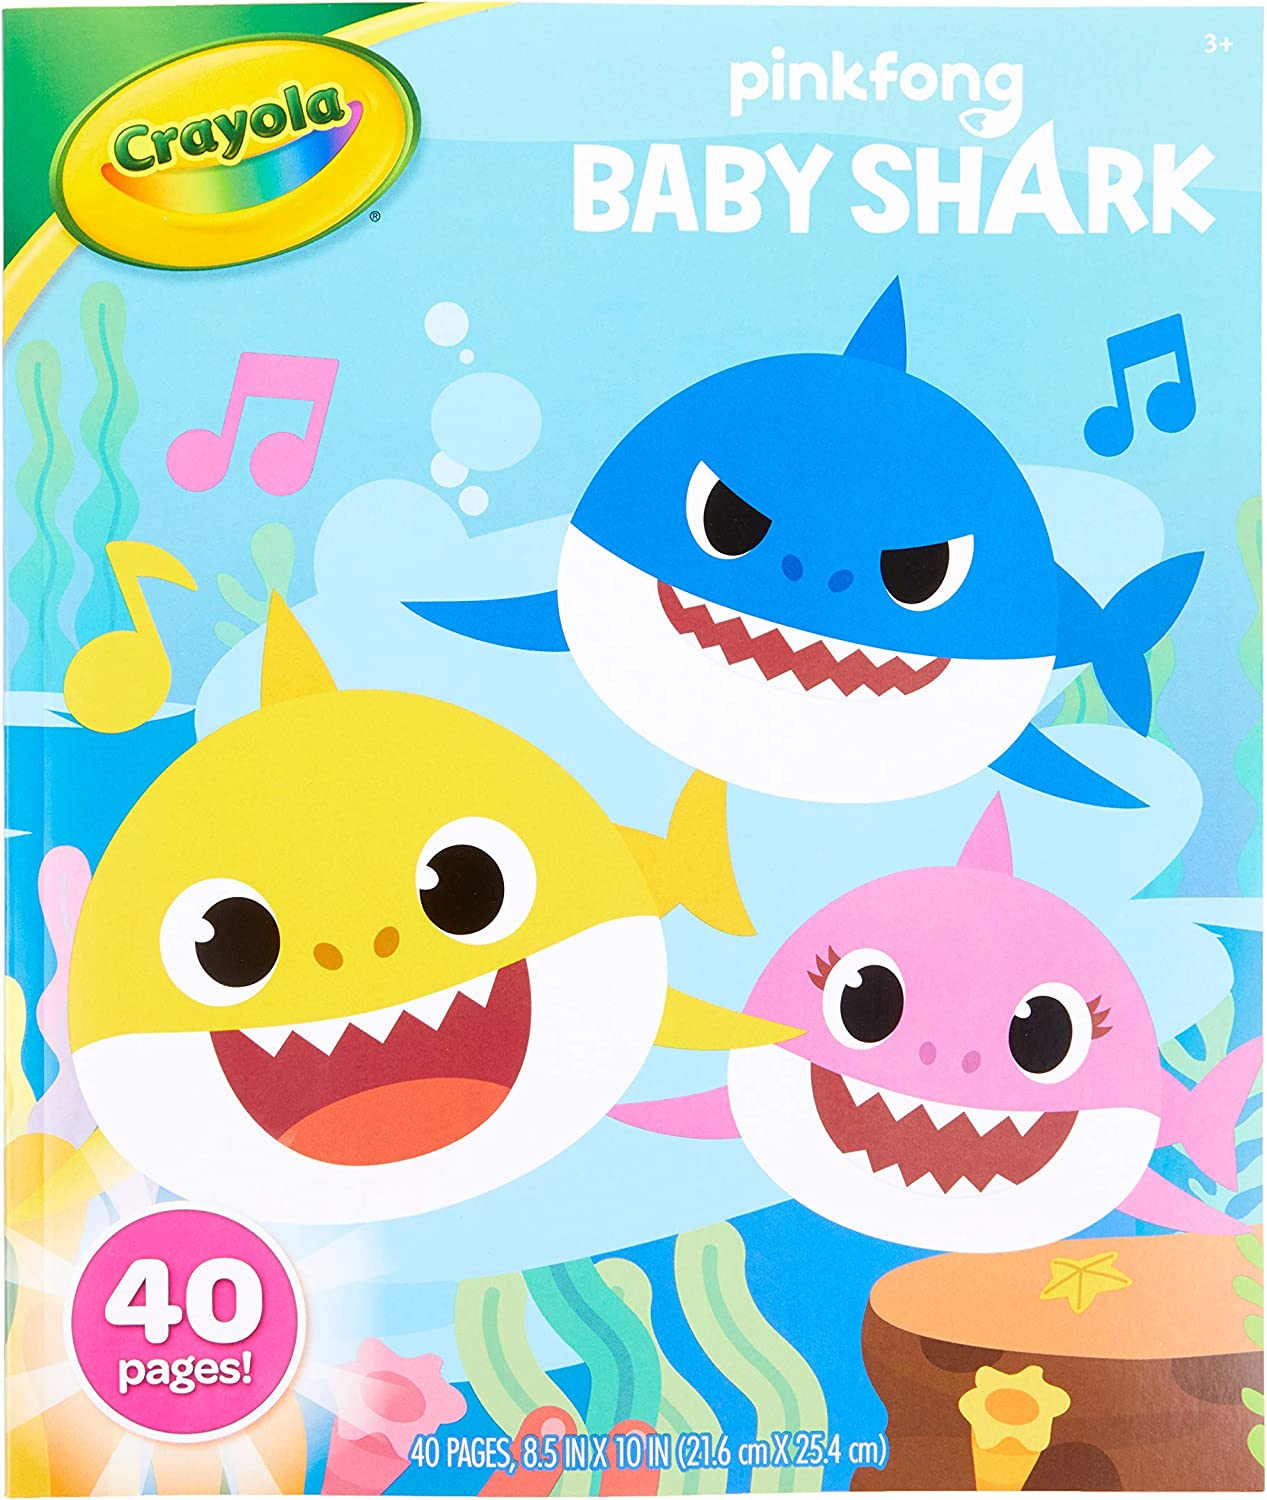 Amazon.com: Crayola Baby Shark Coloring Book, Gift for Kids, Ages ...